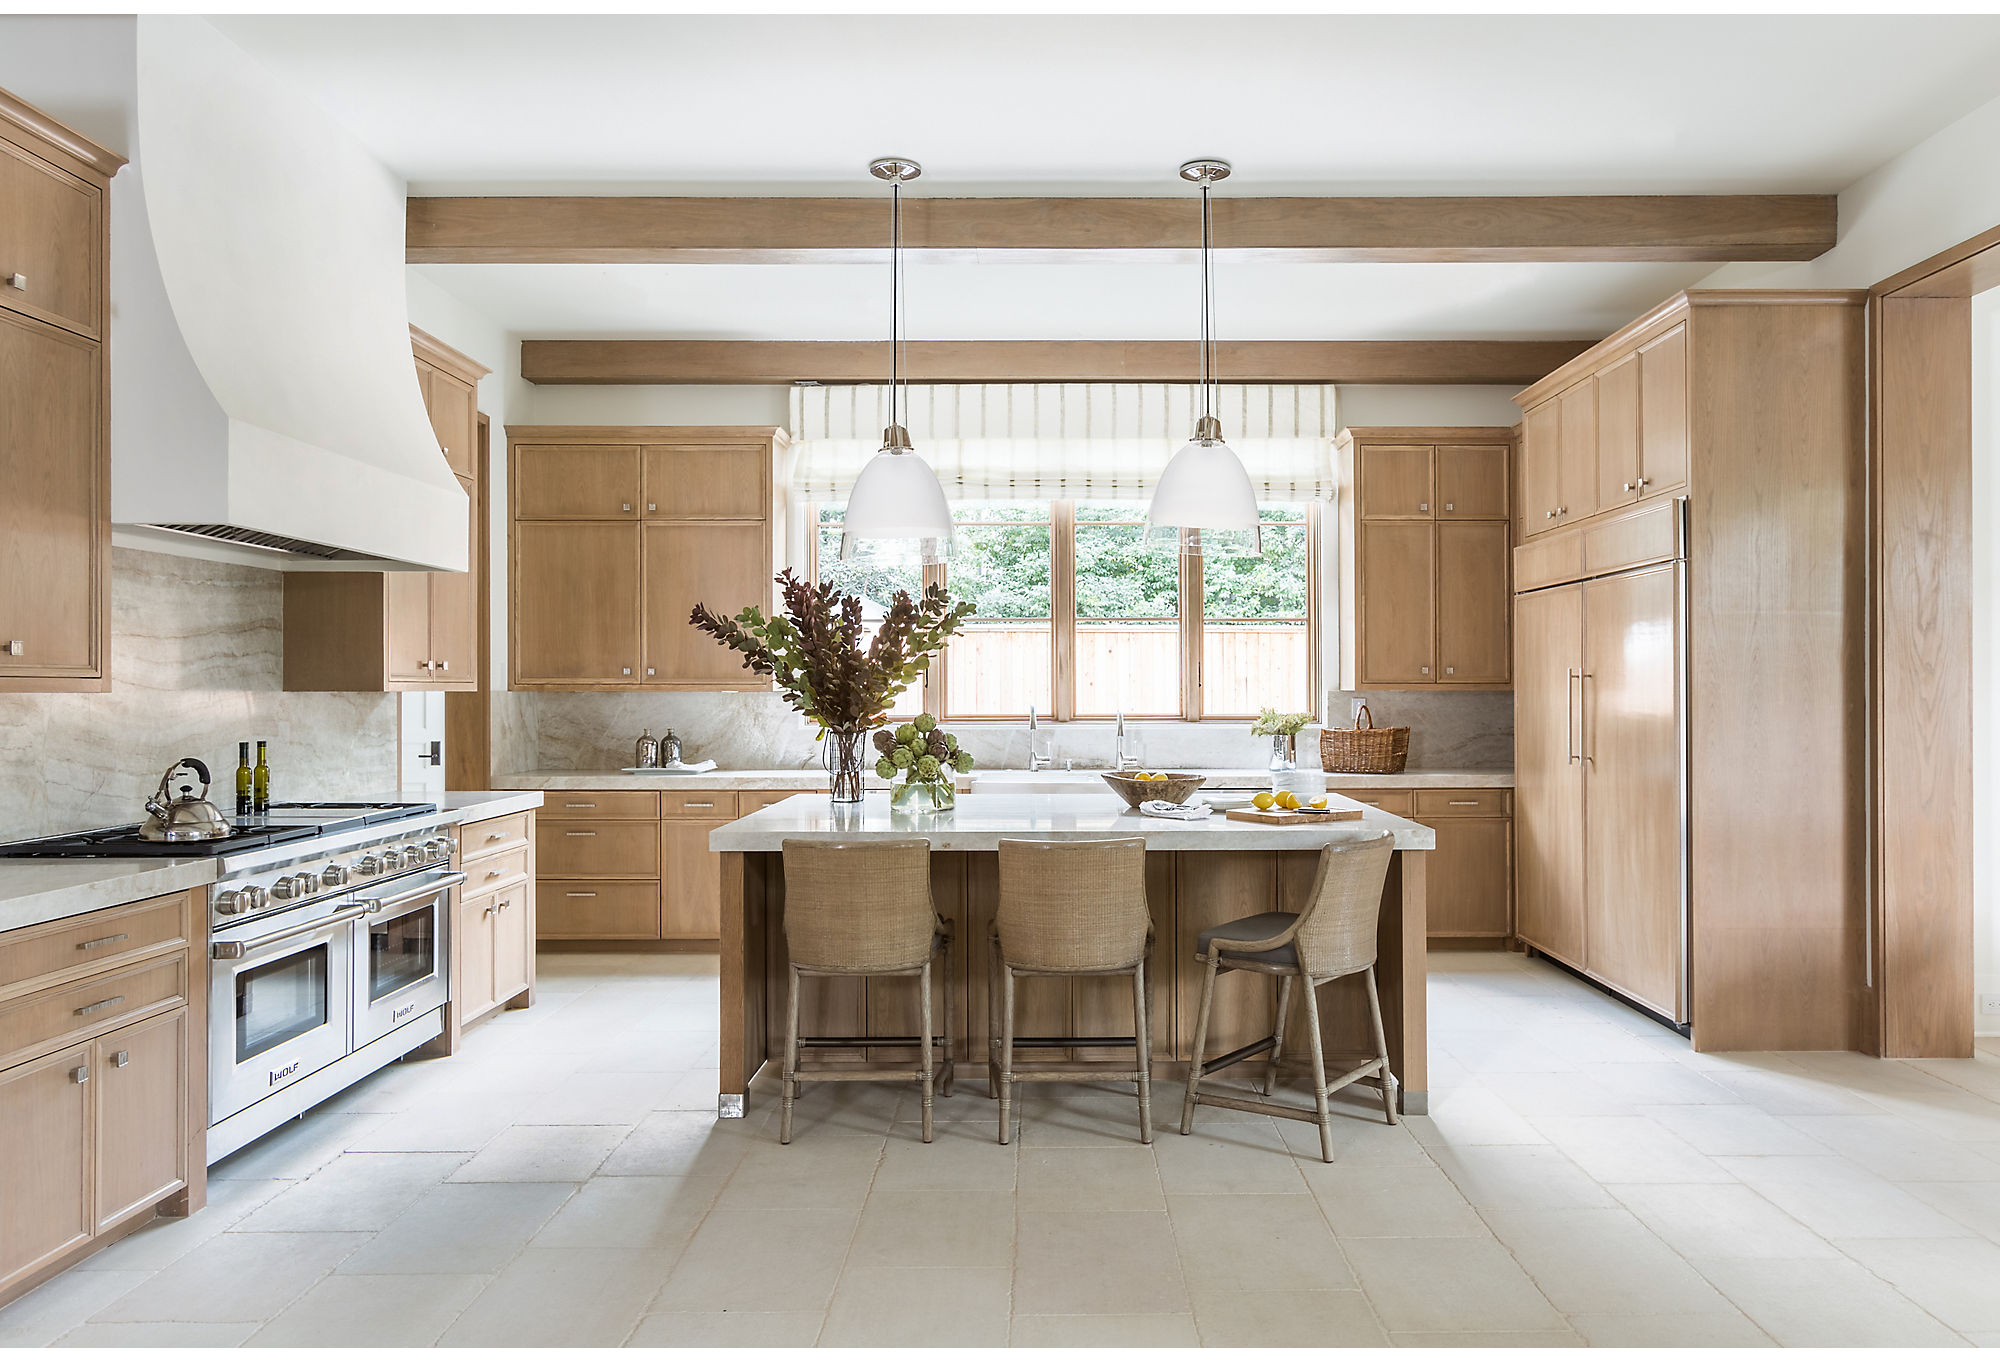 """They're a family who uses their kitchen quite a lot,"" says Marie. In keeping with the simplistic elegance throughout the home, Marie and her team went for  a subdued palette. Subtle caramel tones and spots of brushed nickel make the heart of the home shine."